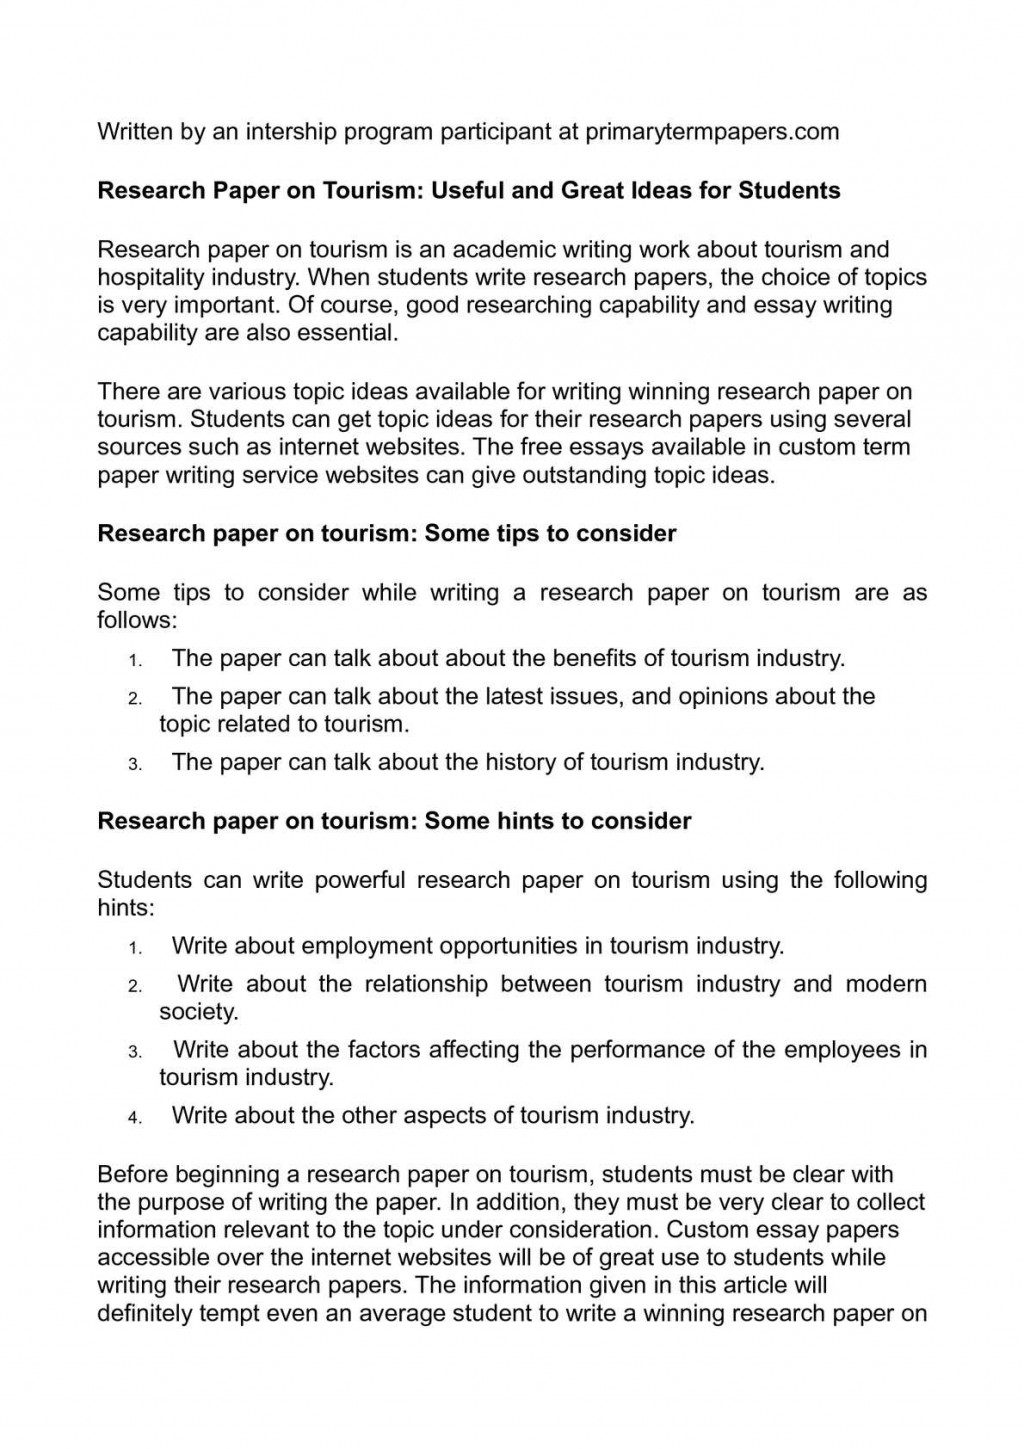 006 Research Paper P1 Topics To Writebout In Shocking Write About A Health On Large